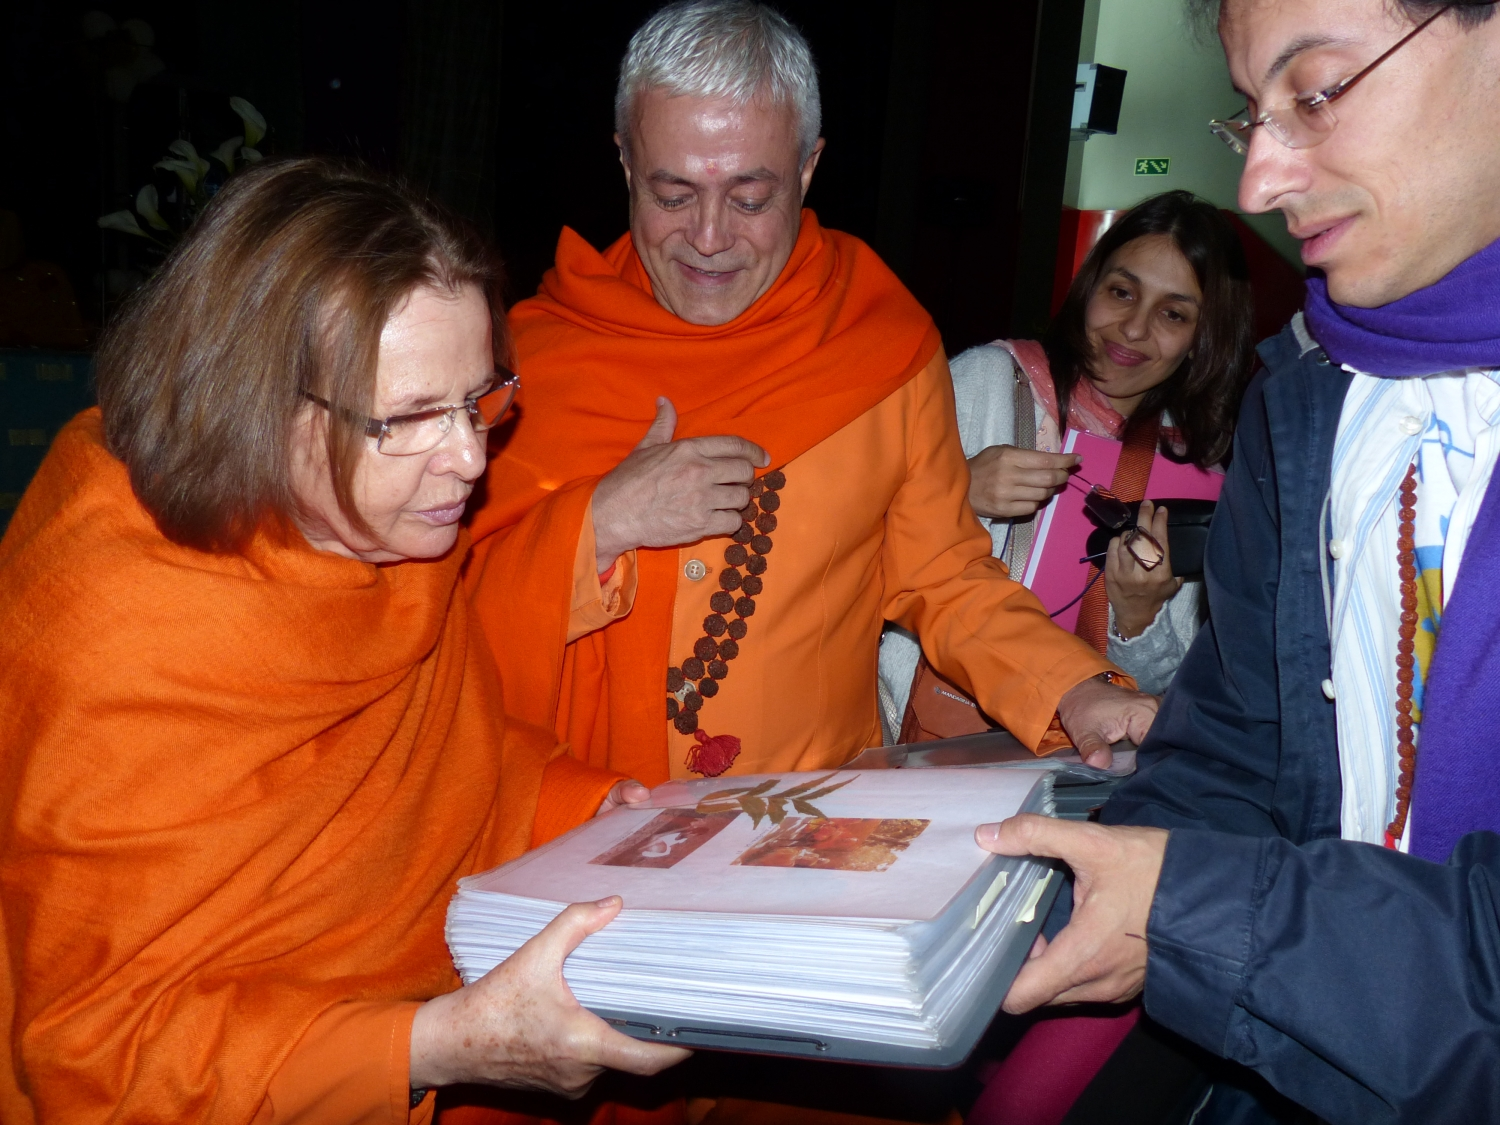 Meeting of H.H. Jagat Guru Amrta Sūryānanda Mahā Rāja with Swami Durgánanda, Director of the Shivánanda Centres in Europe